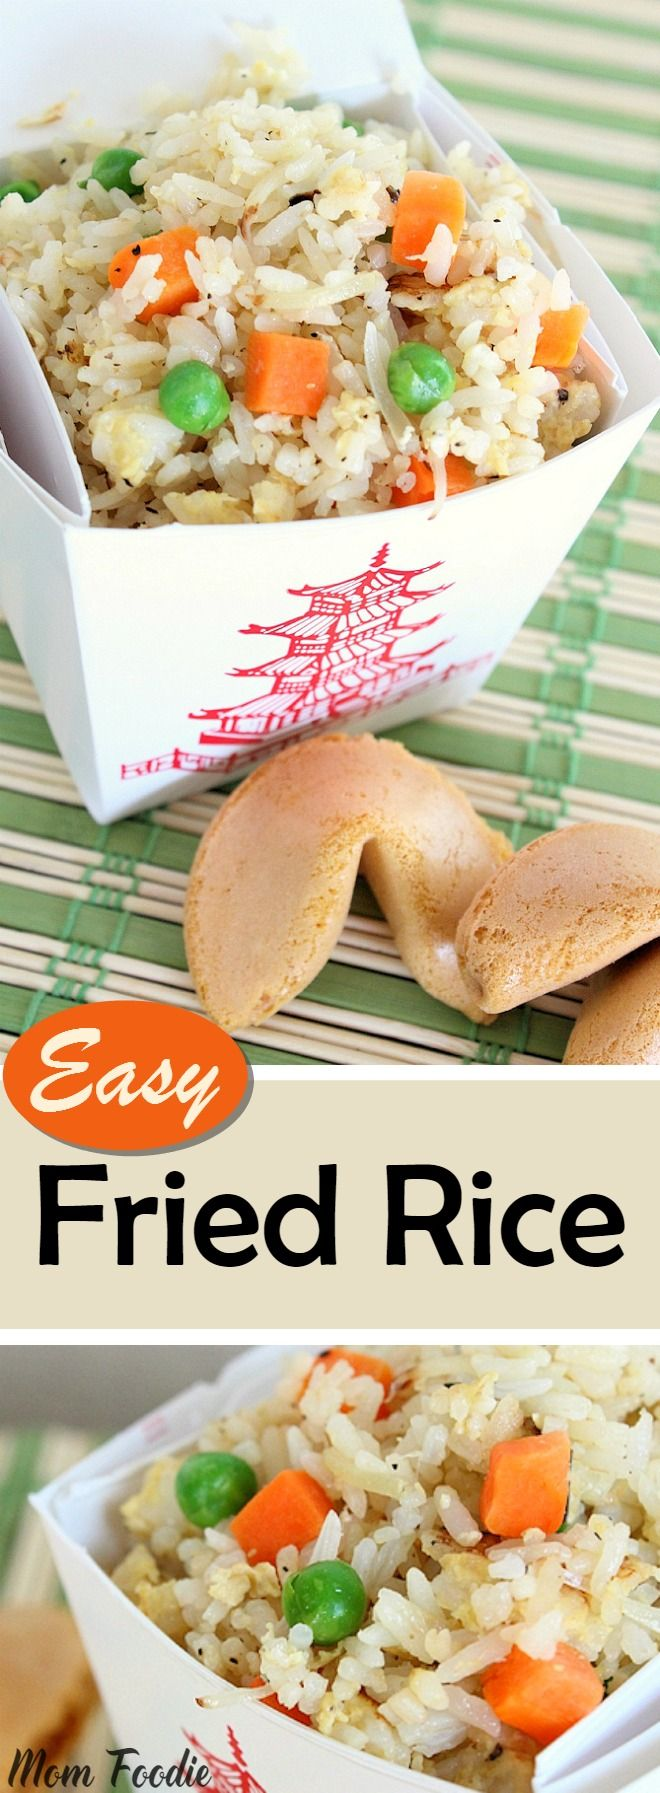 Easy Fried Rice Recipe - Easy to make right at home!